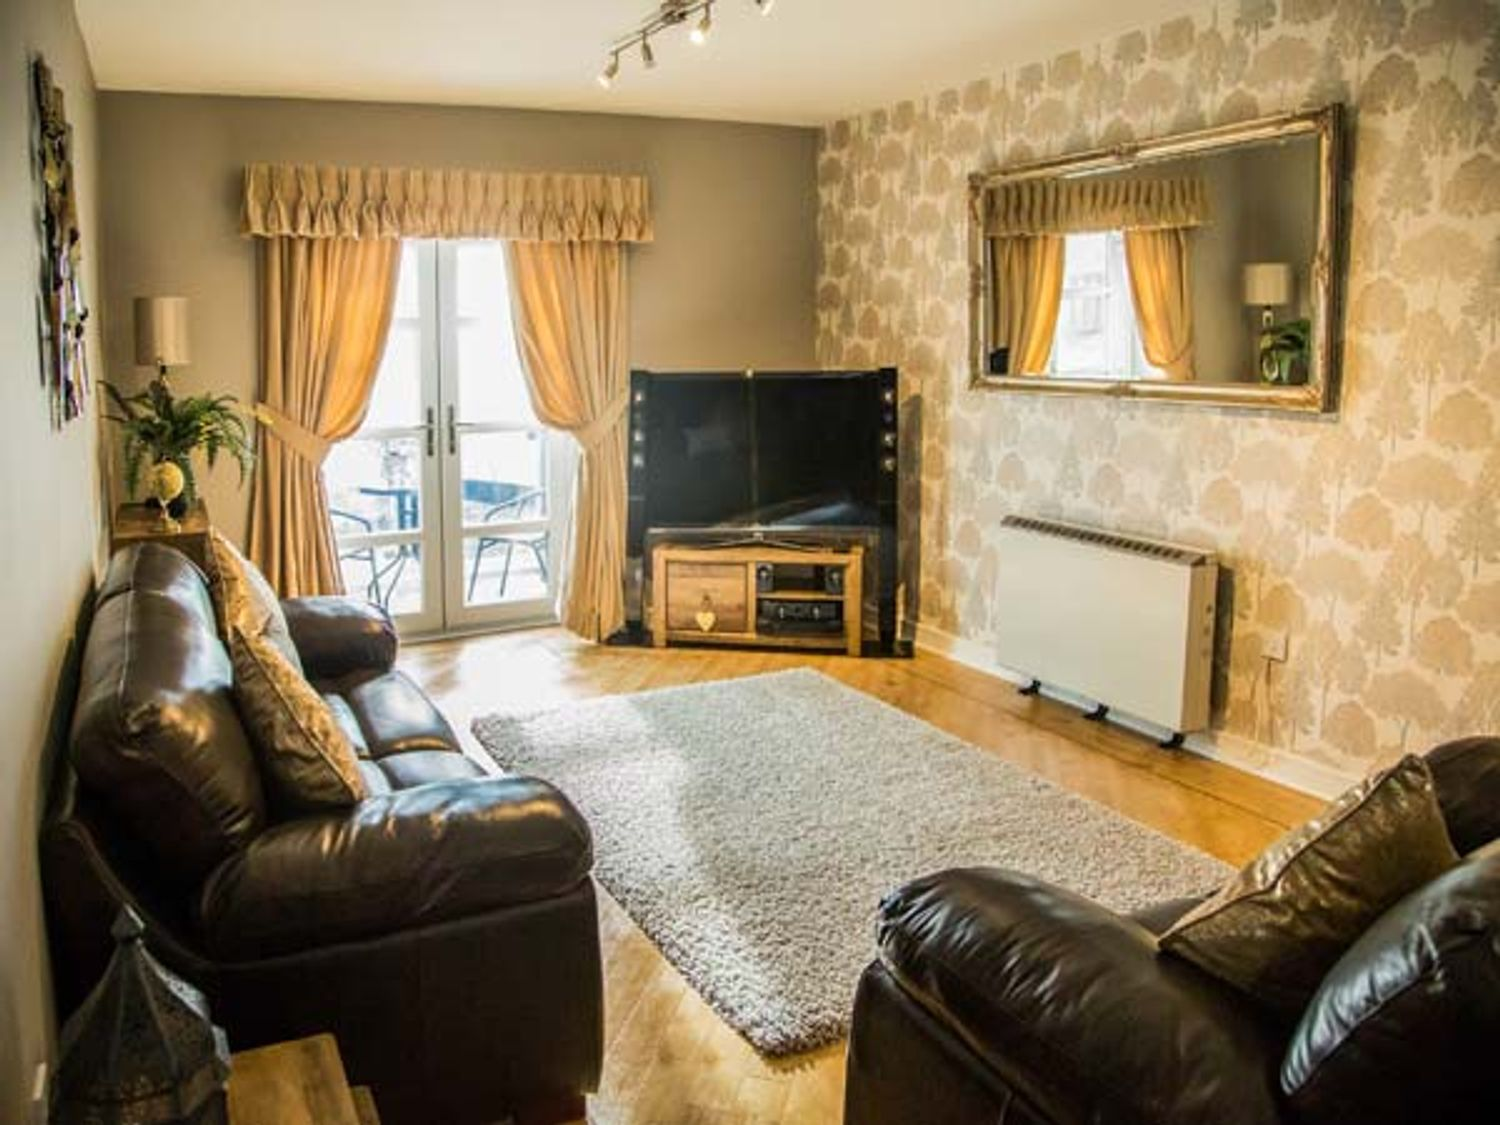 6 Mariners Point - Whitby & North Yorkshire - 935730 - photo 1